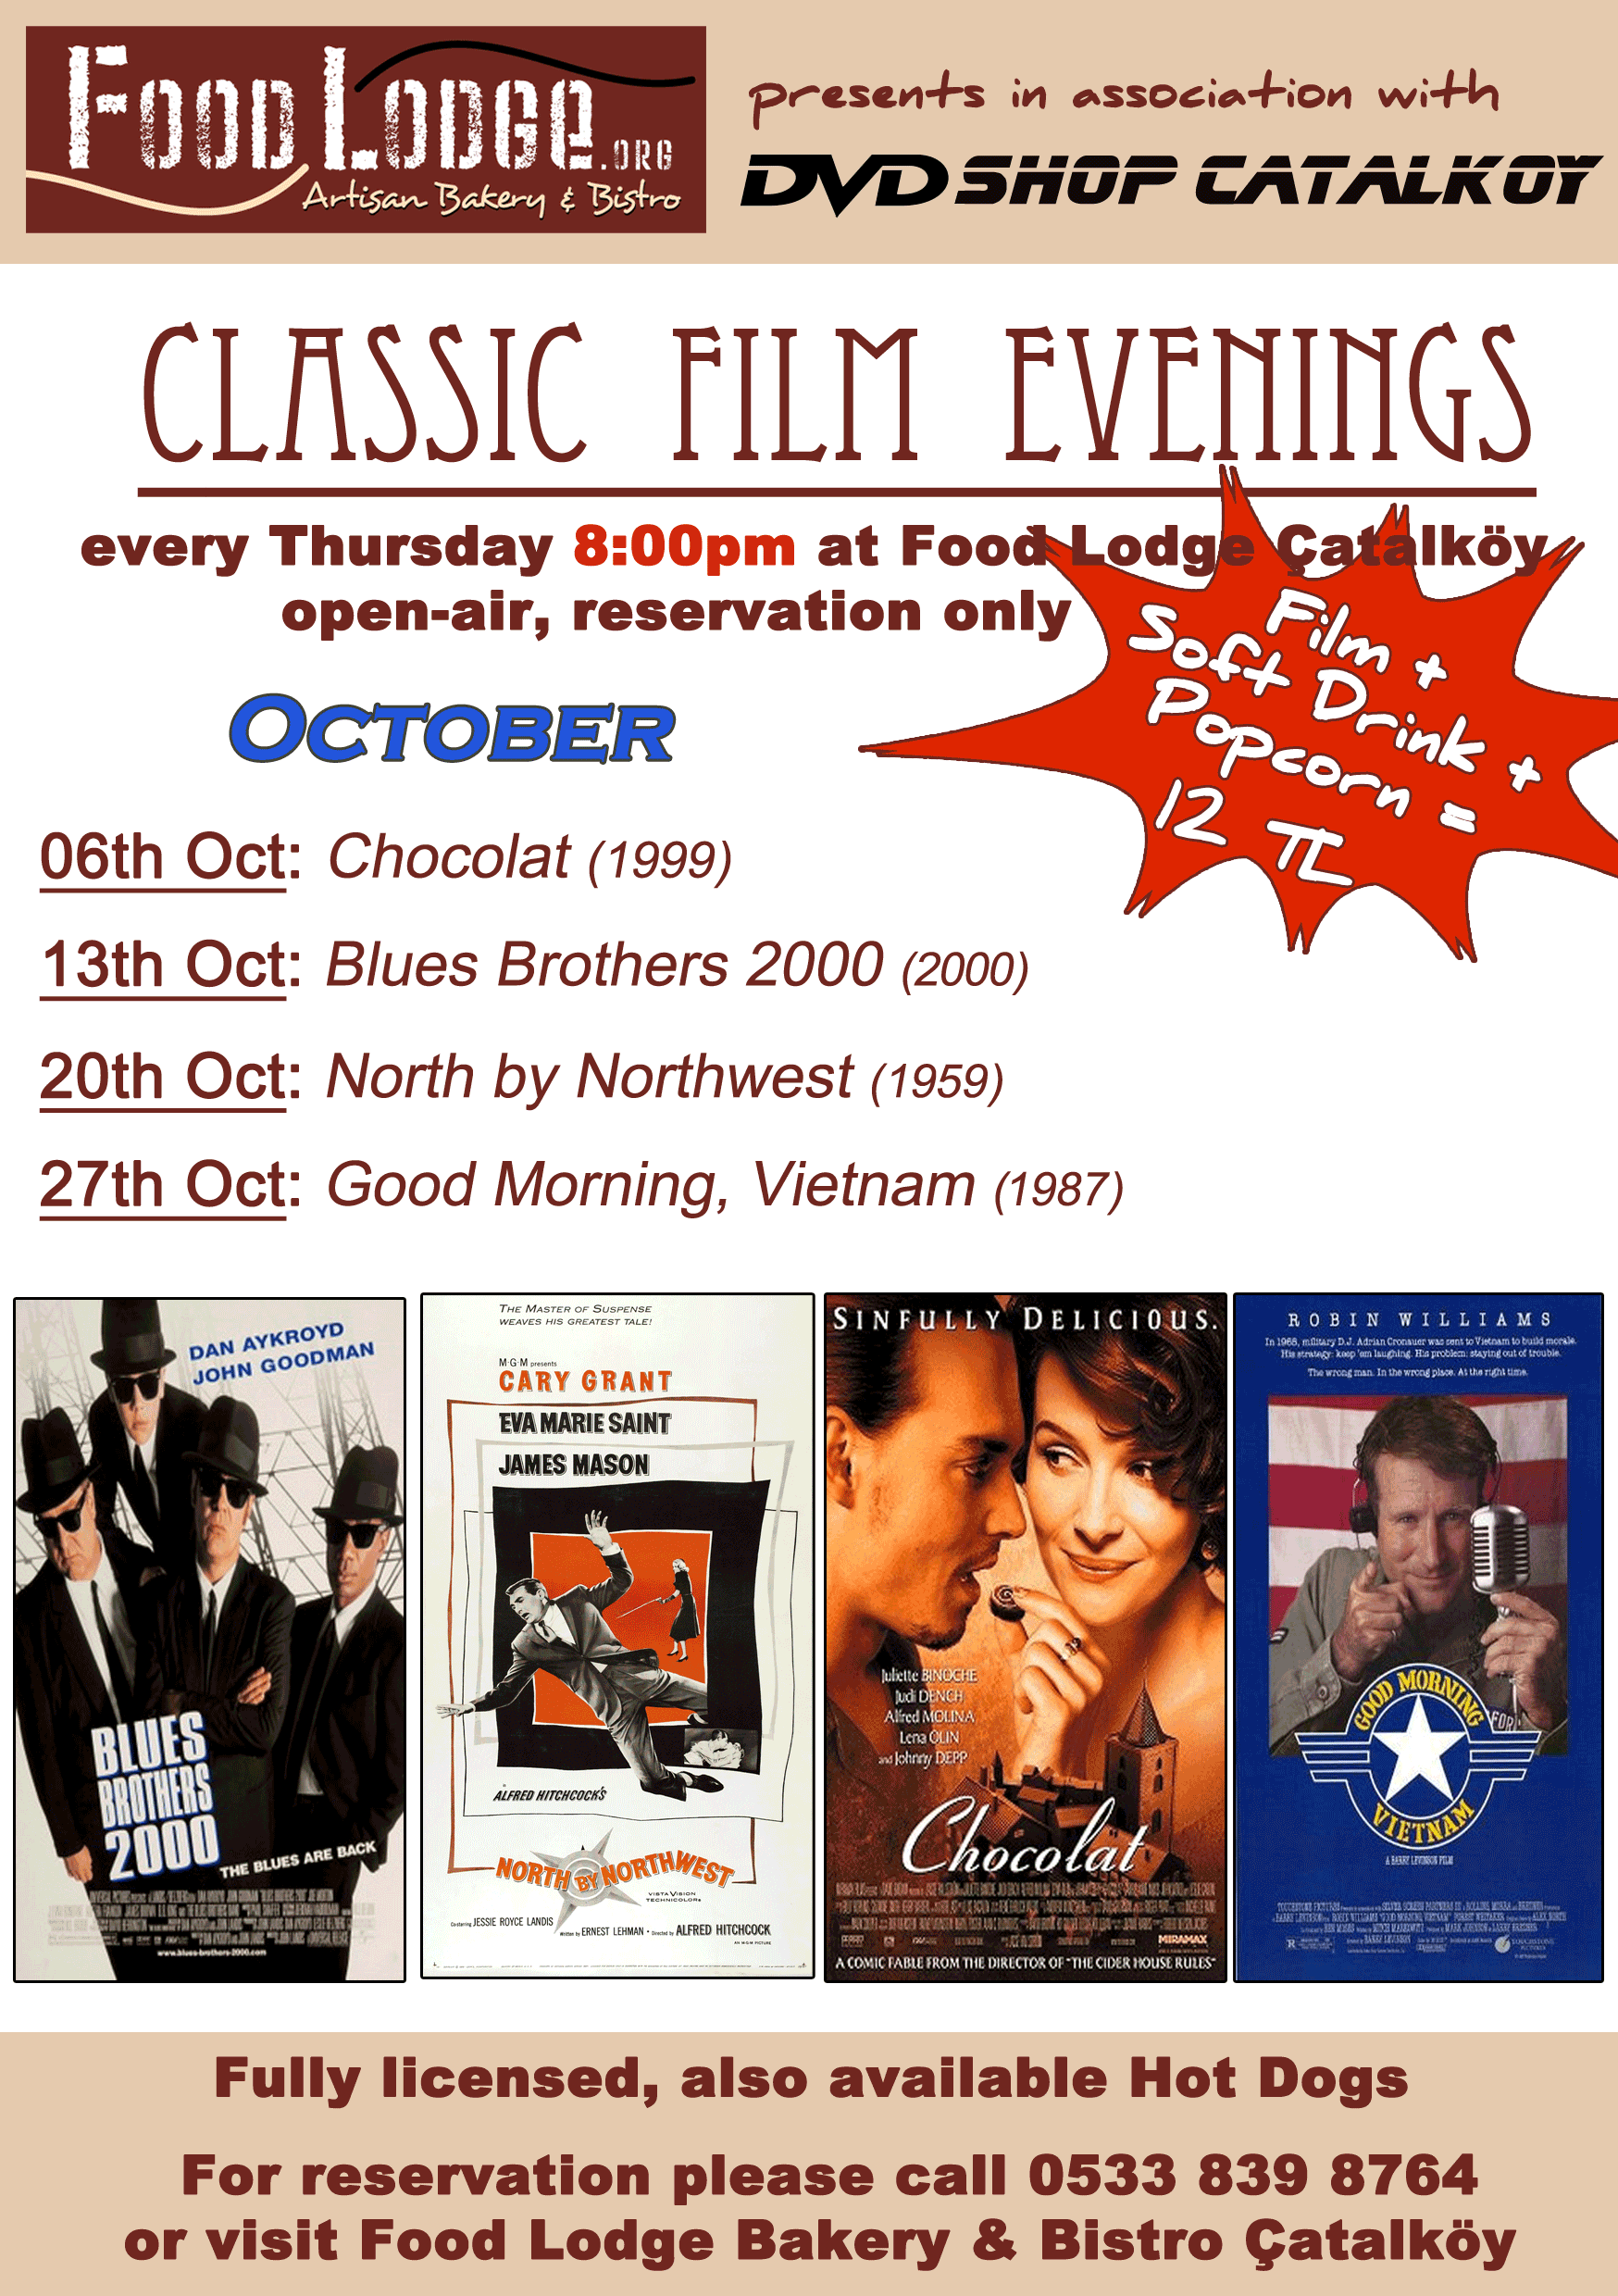 Classic film evenings at the Food Lodge